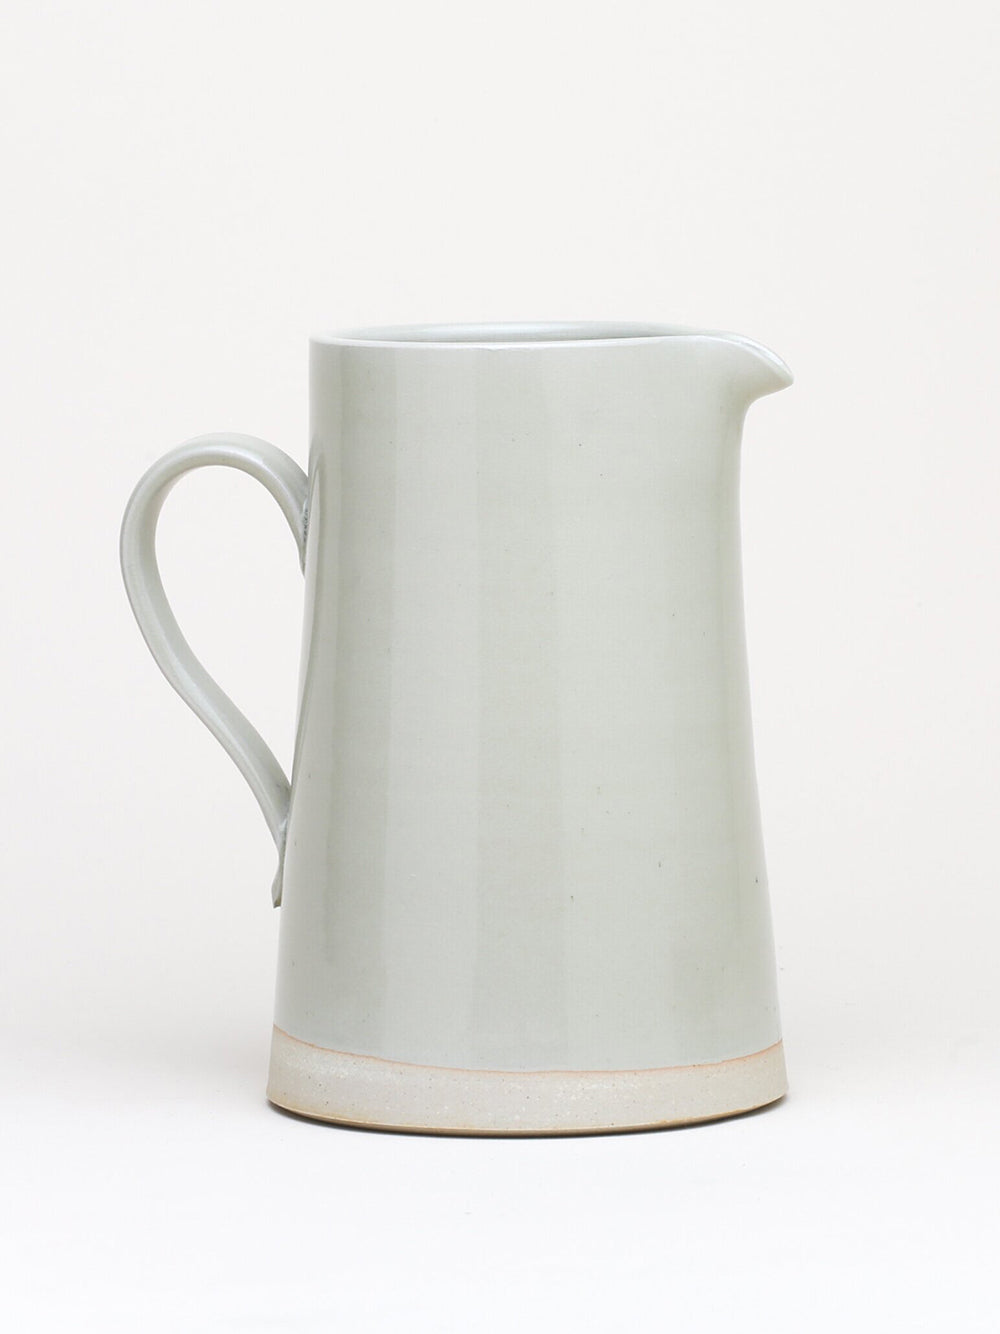 wrf large pitcher in mist